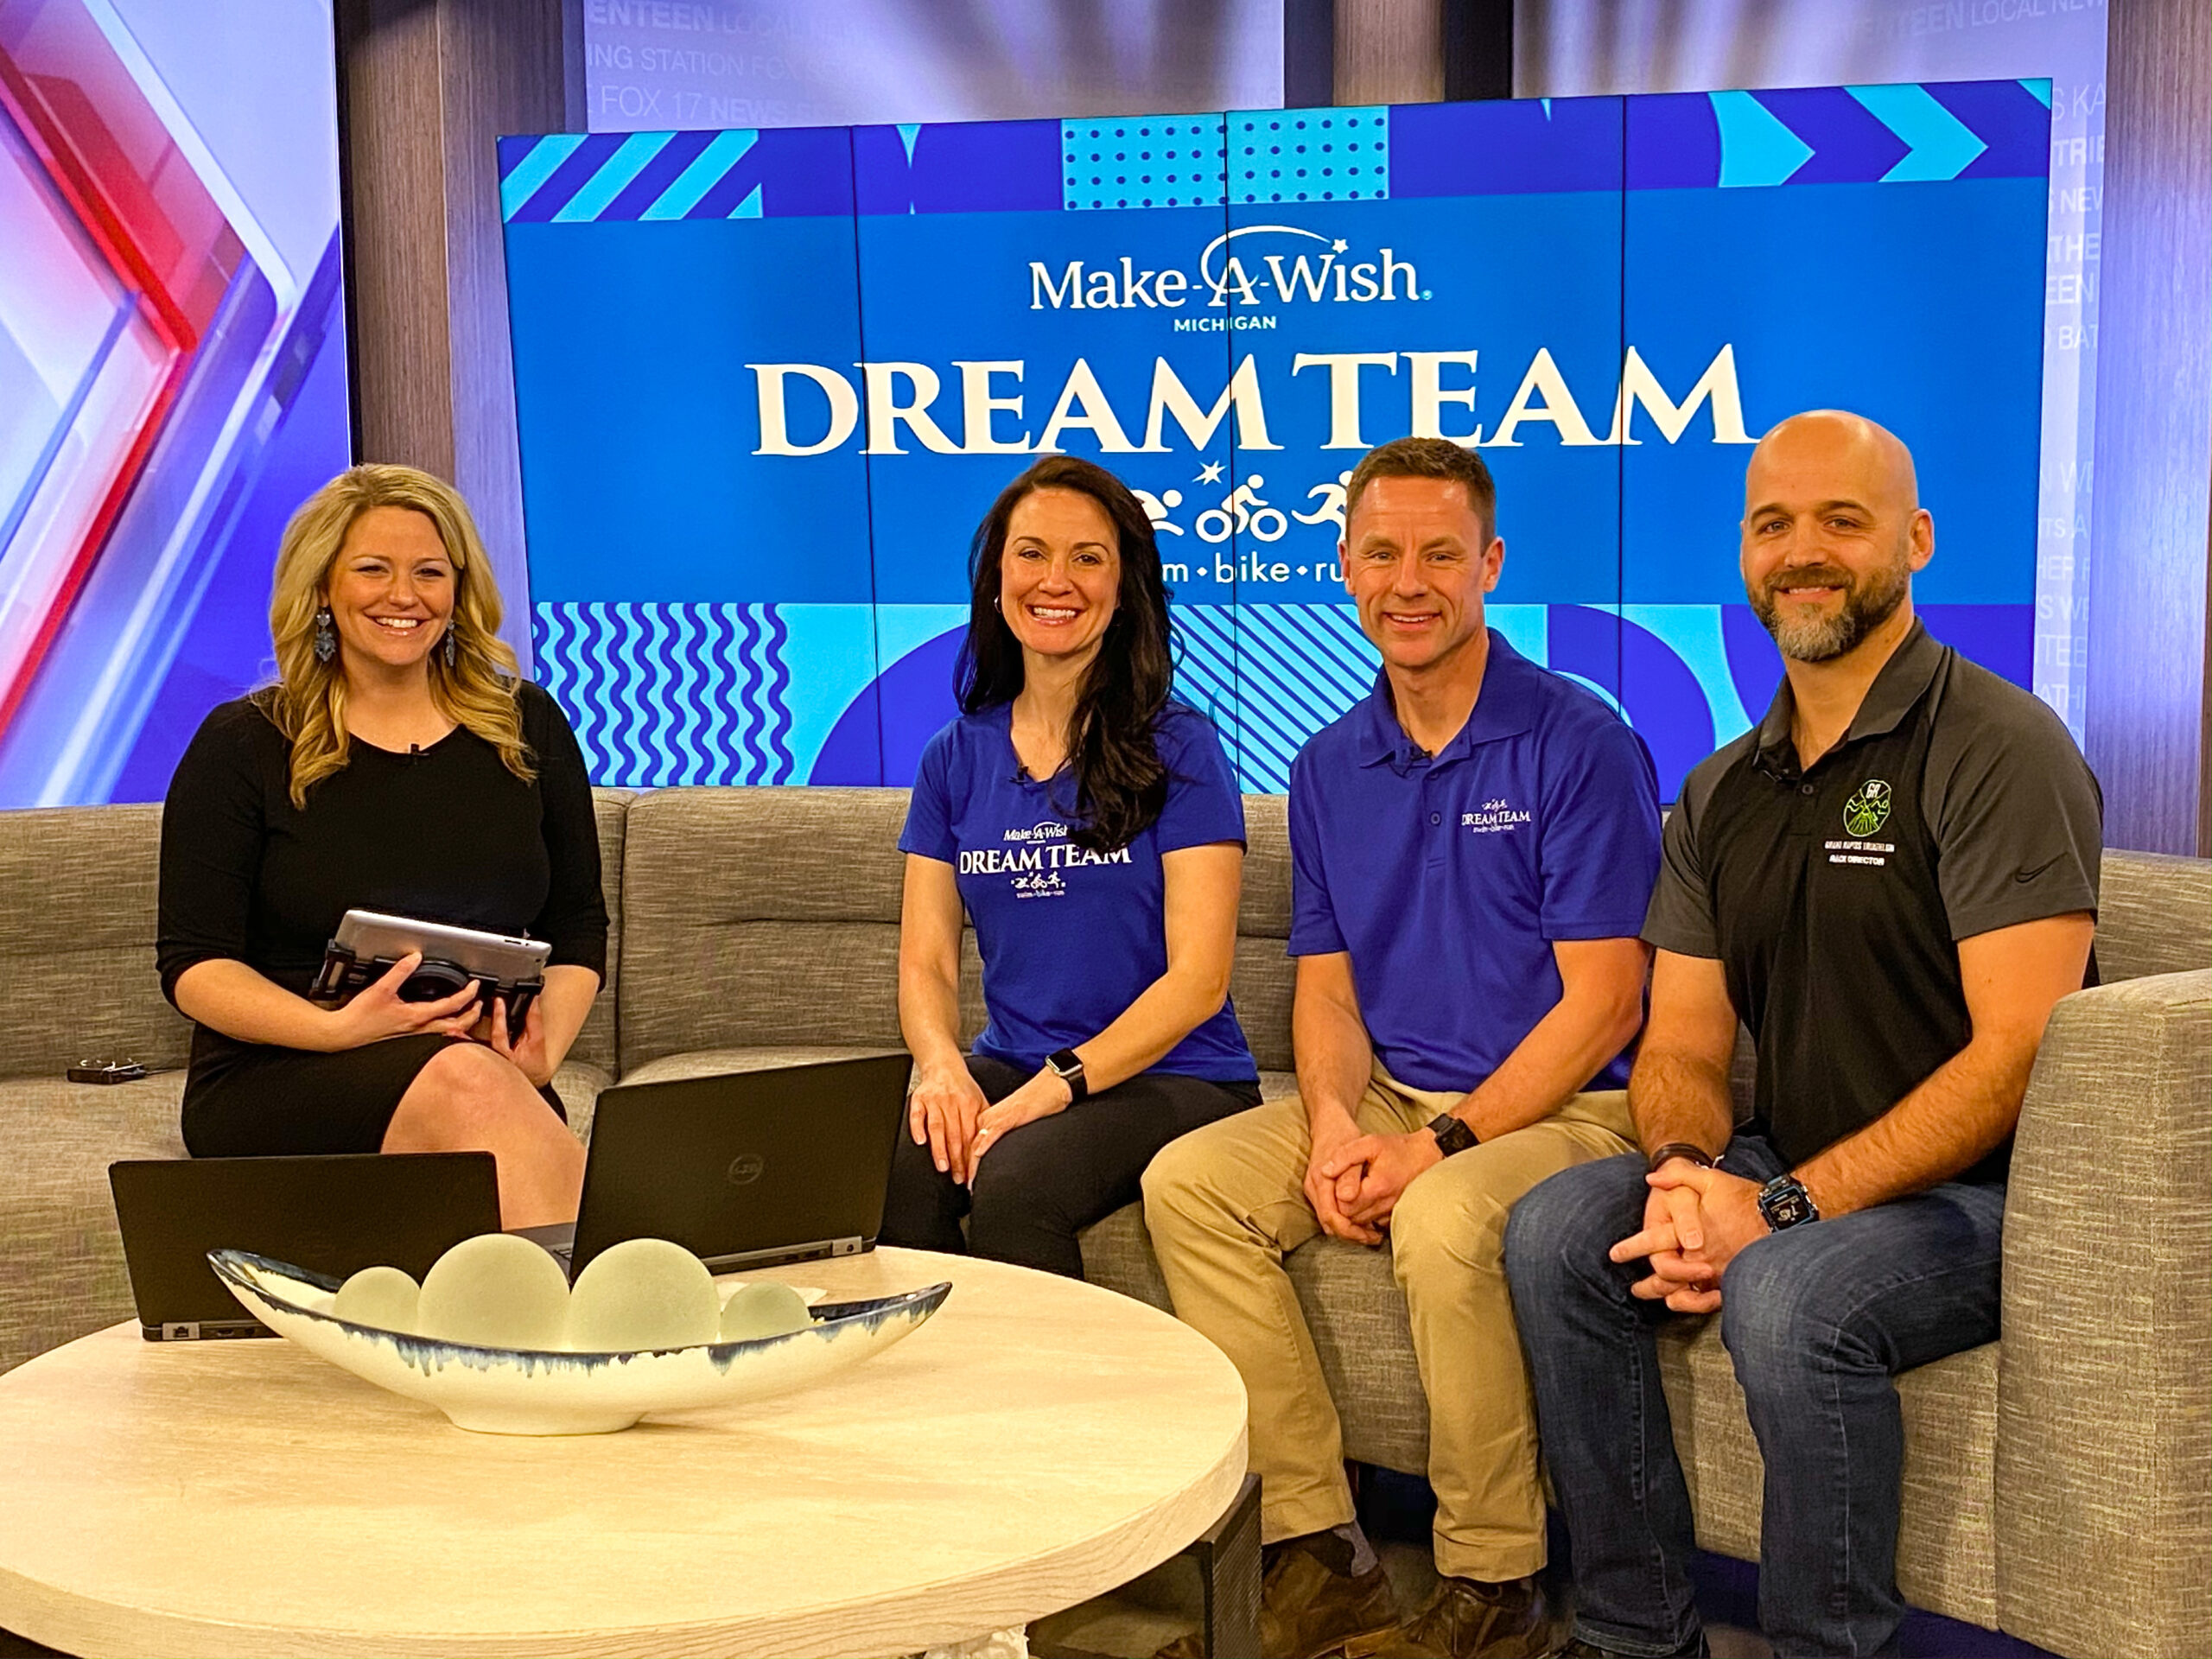 The GRI Tri teams up with the Dream Team Benefiting Make-A-Wish Michigan